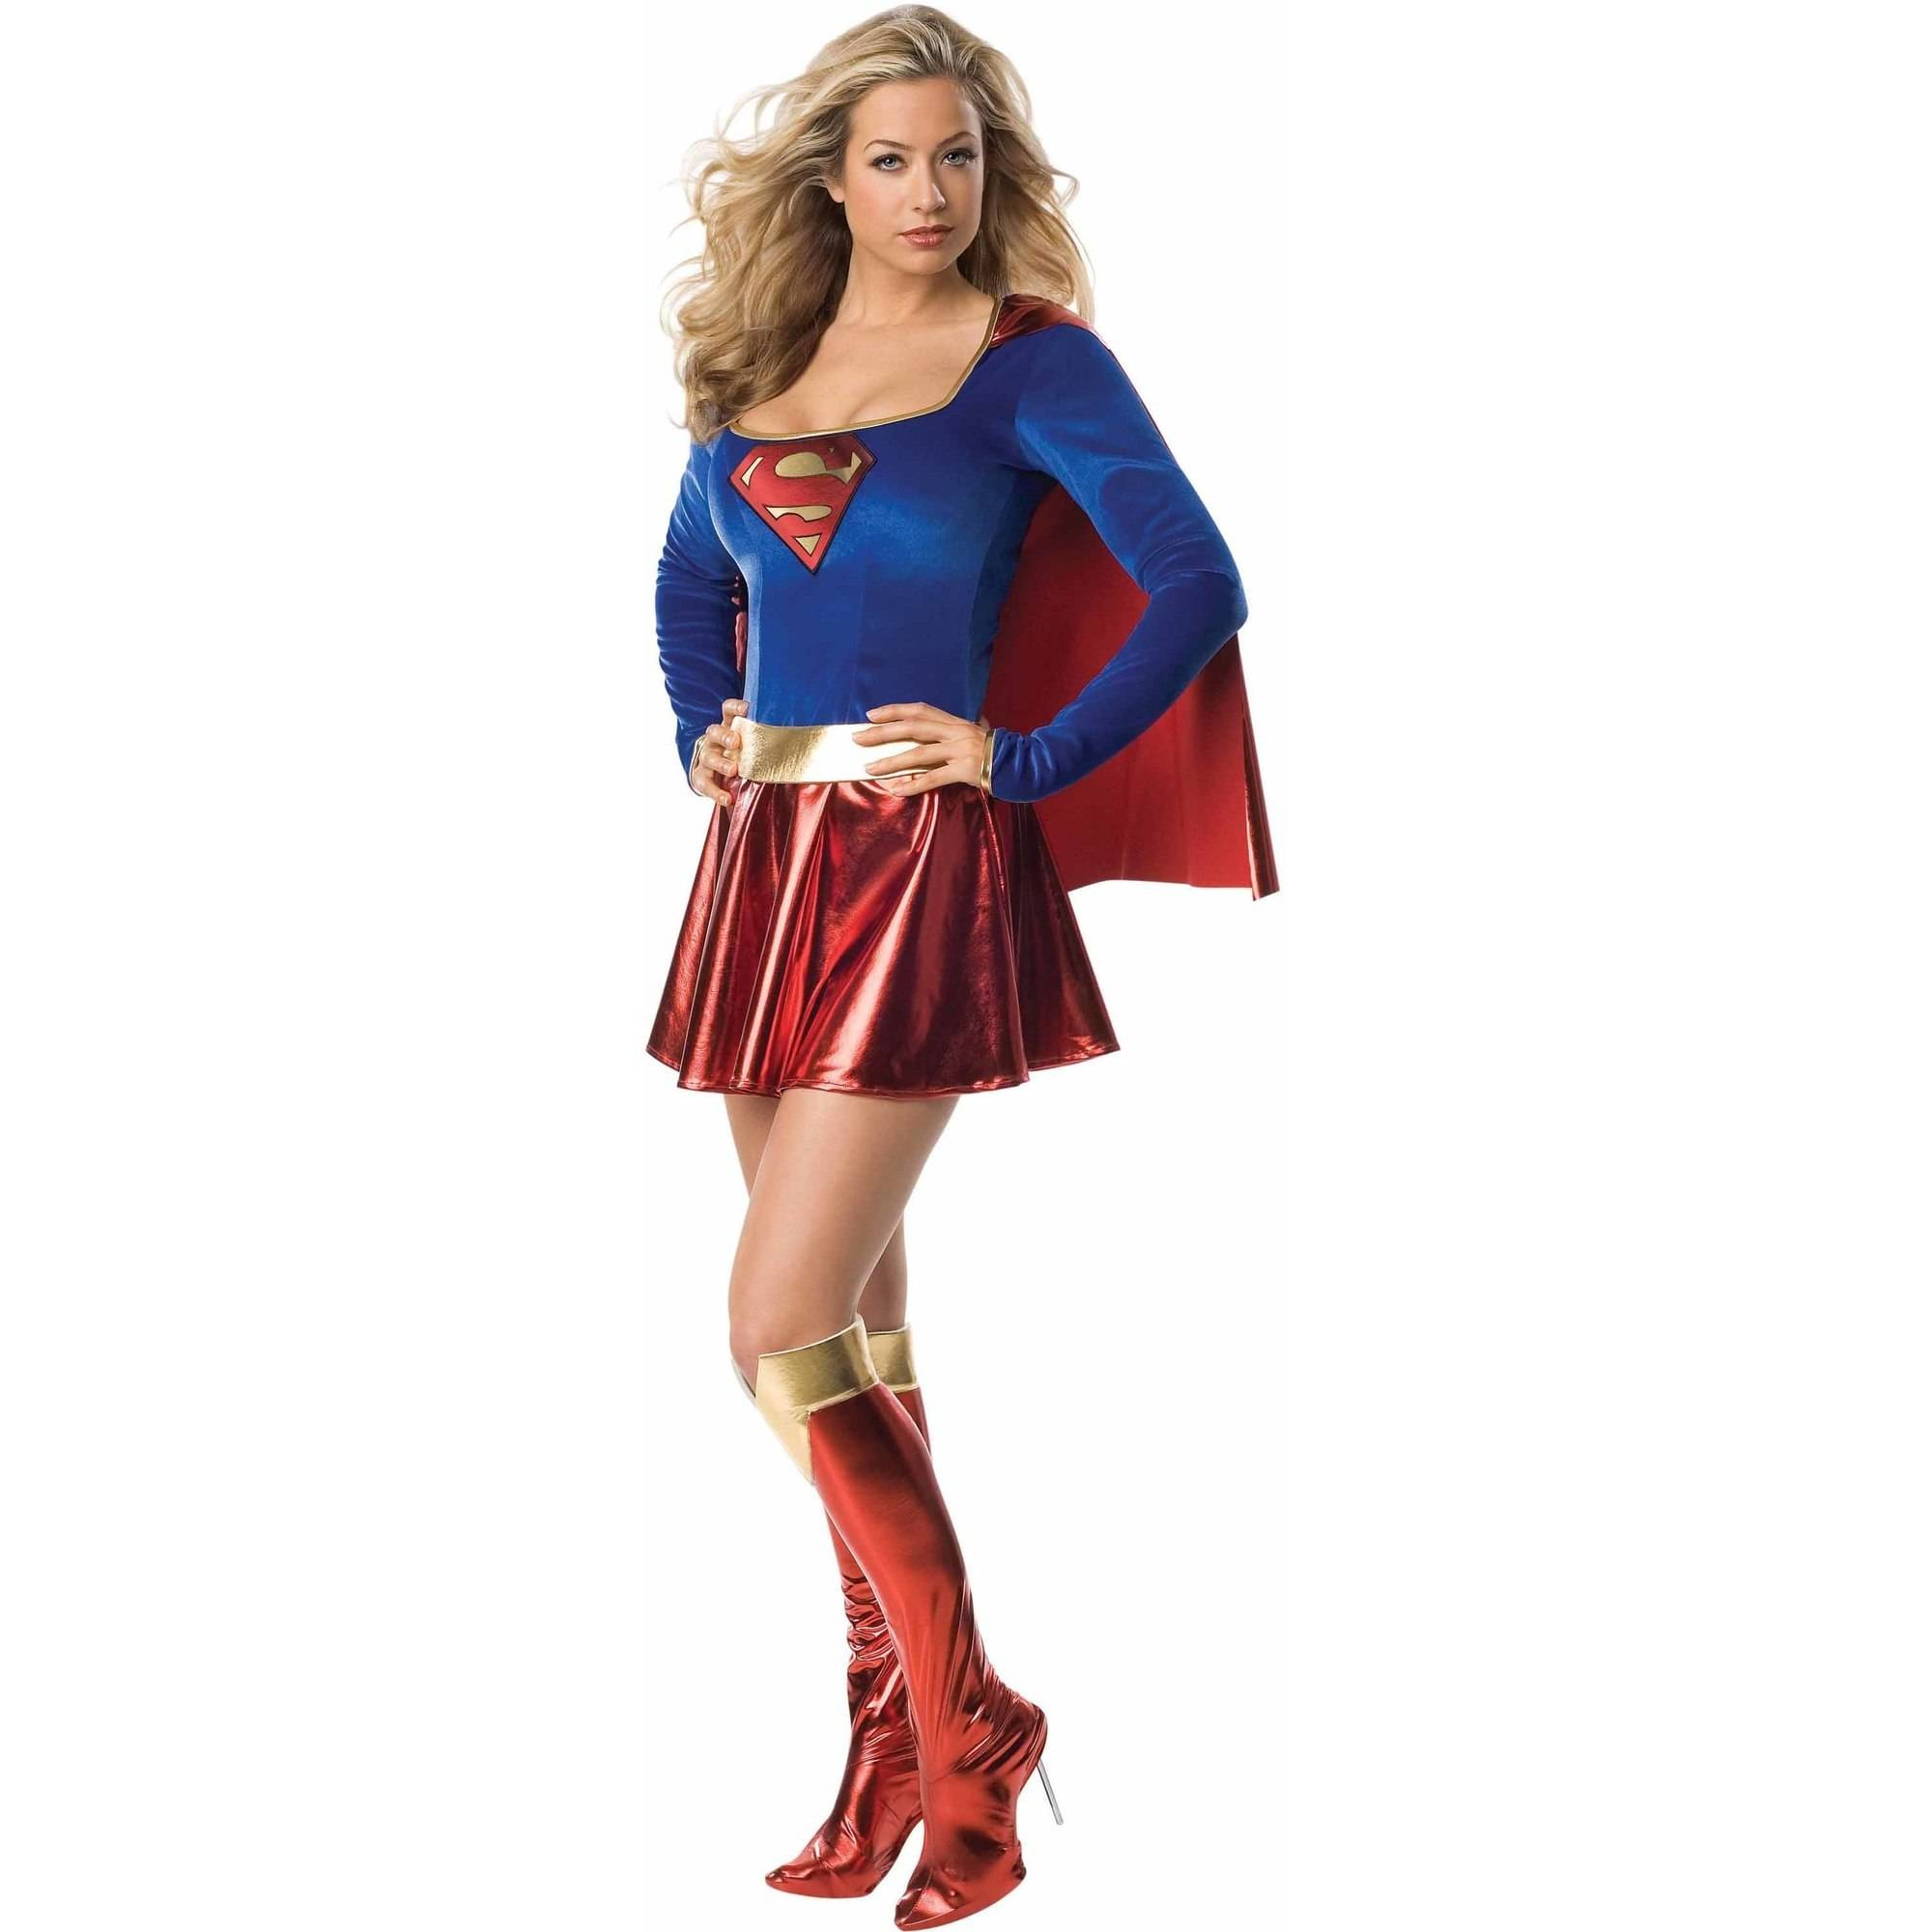 Deluxe Supergirl Adult Costume, Small (4-6)